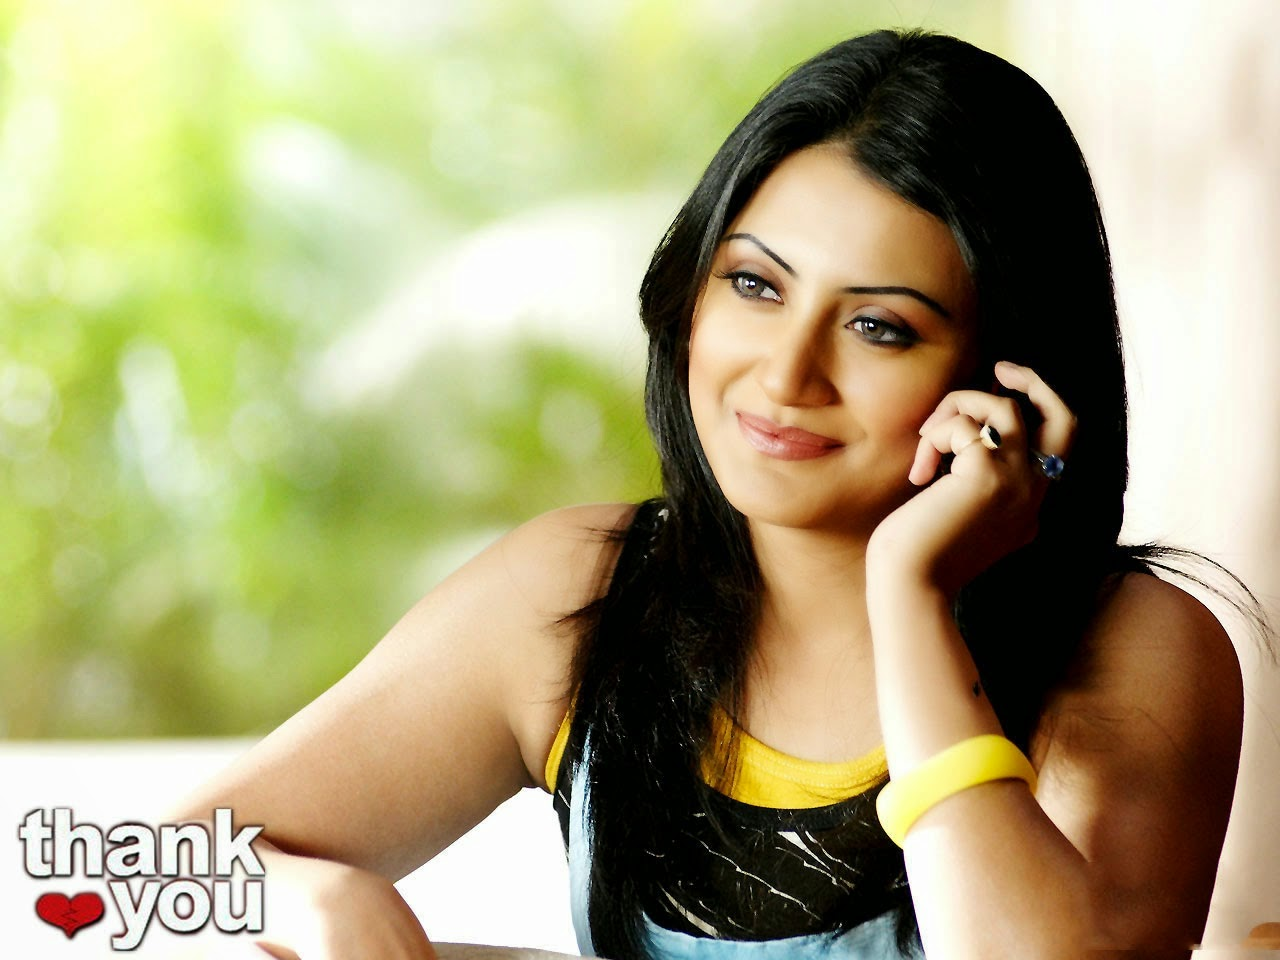 Full Hd Wallpapers Bollywood Actress: Wellcome To Bollywood HD Wallpapers: Rimi Sen Bollywood